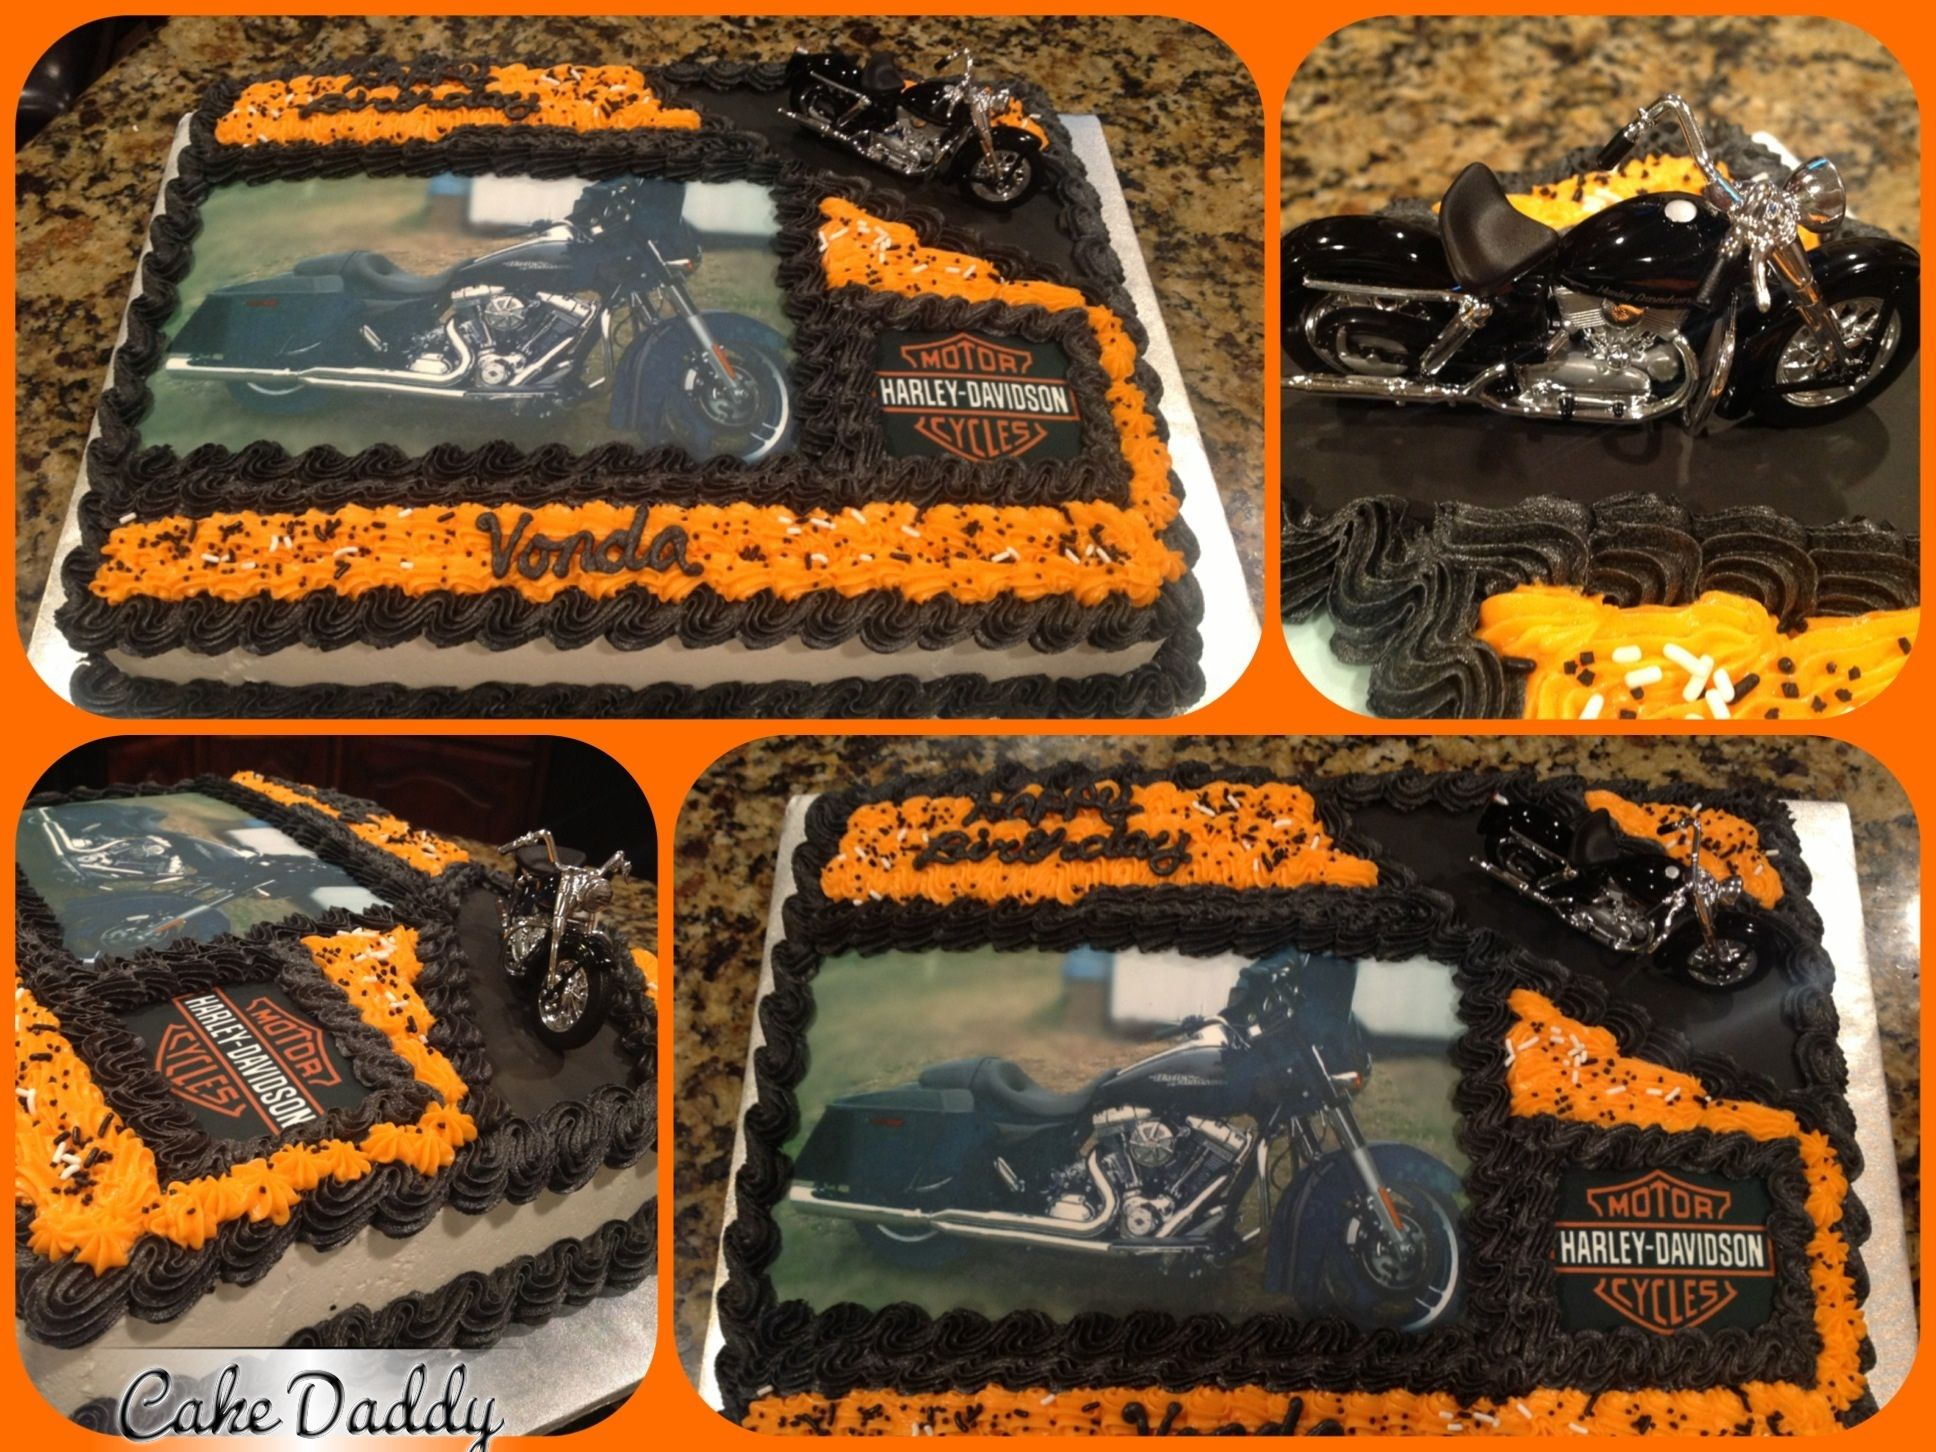 Harley Davidson sheet cake Custom Cakes by Cake Daddy Pinterest